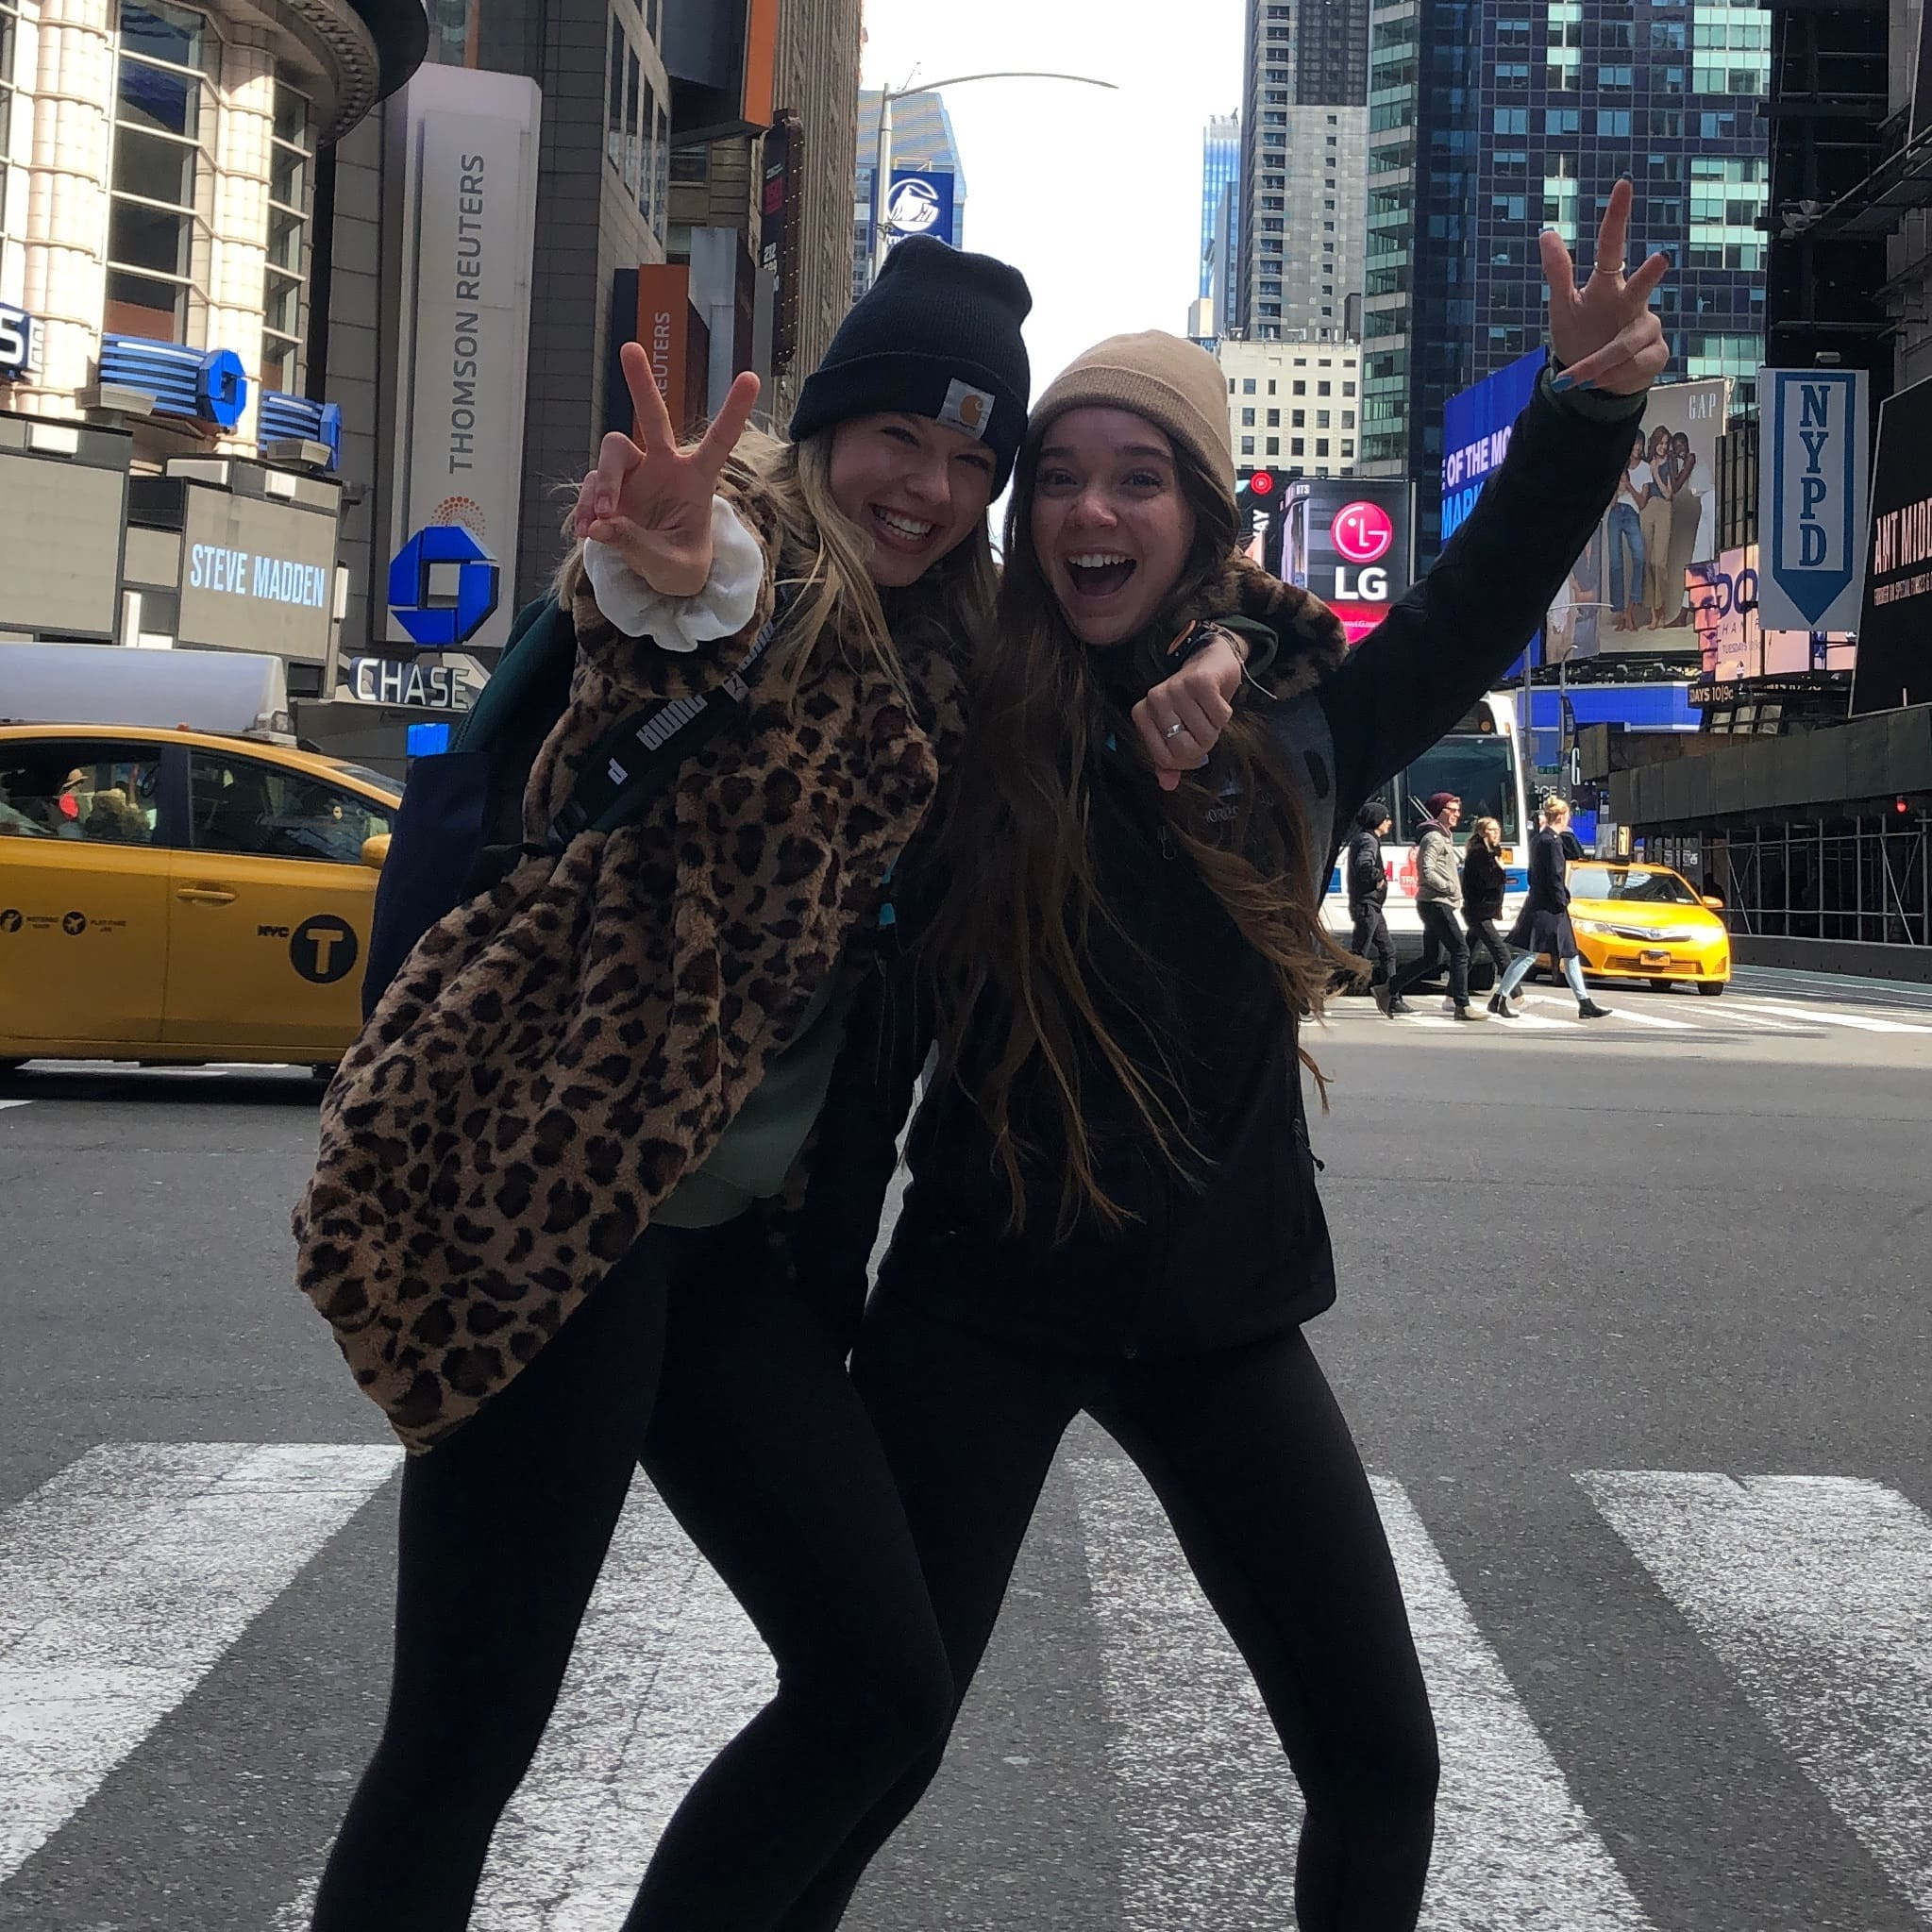 choir students striking a fun pose in a NYC crosswalk during their student trip